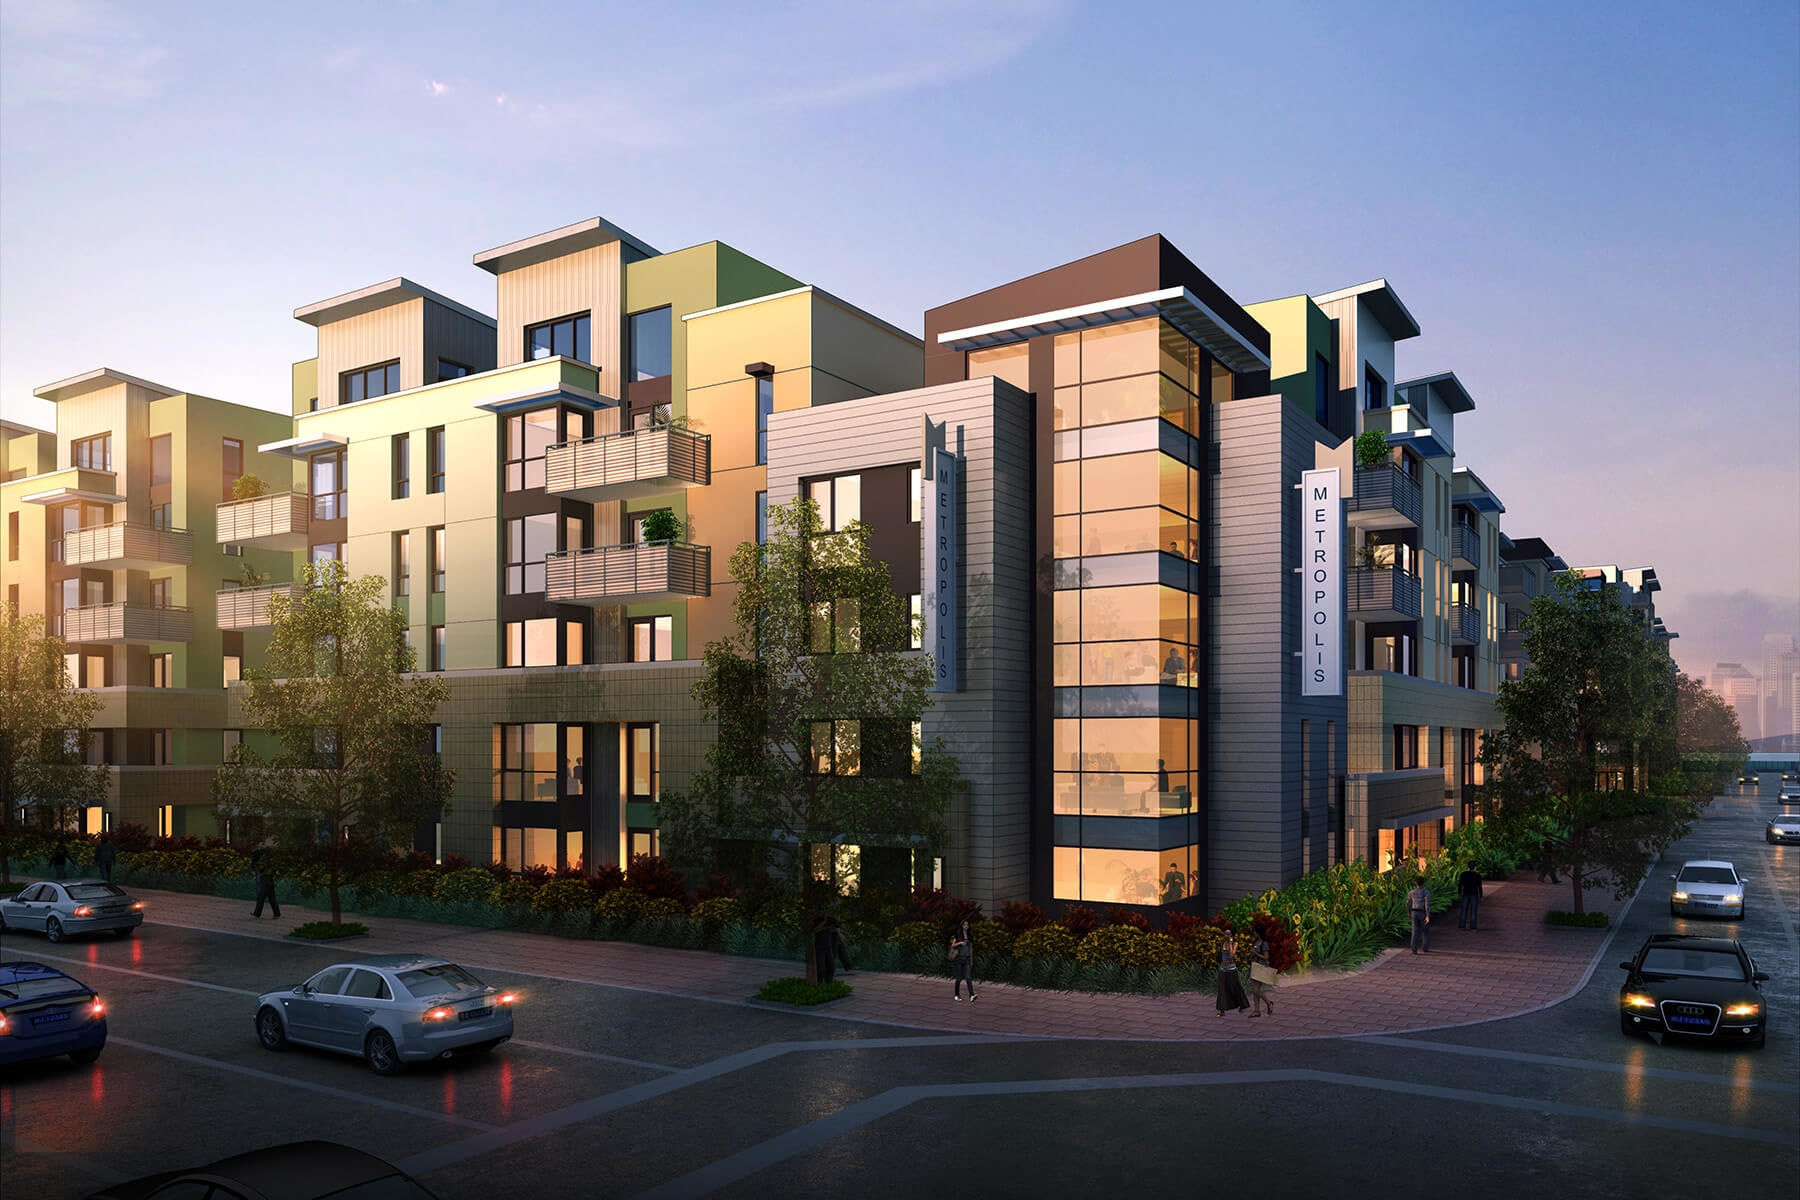 Stephen frank 39 s california political news and views for New apartments